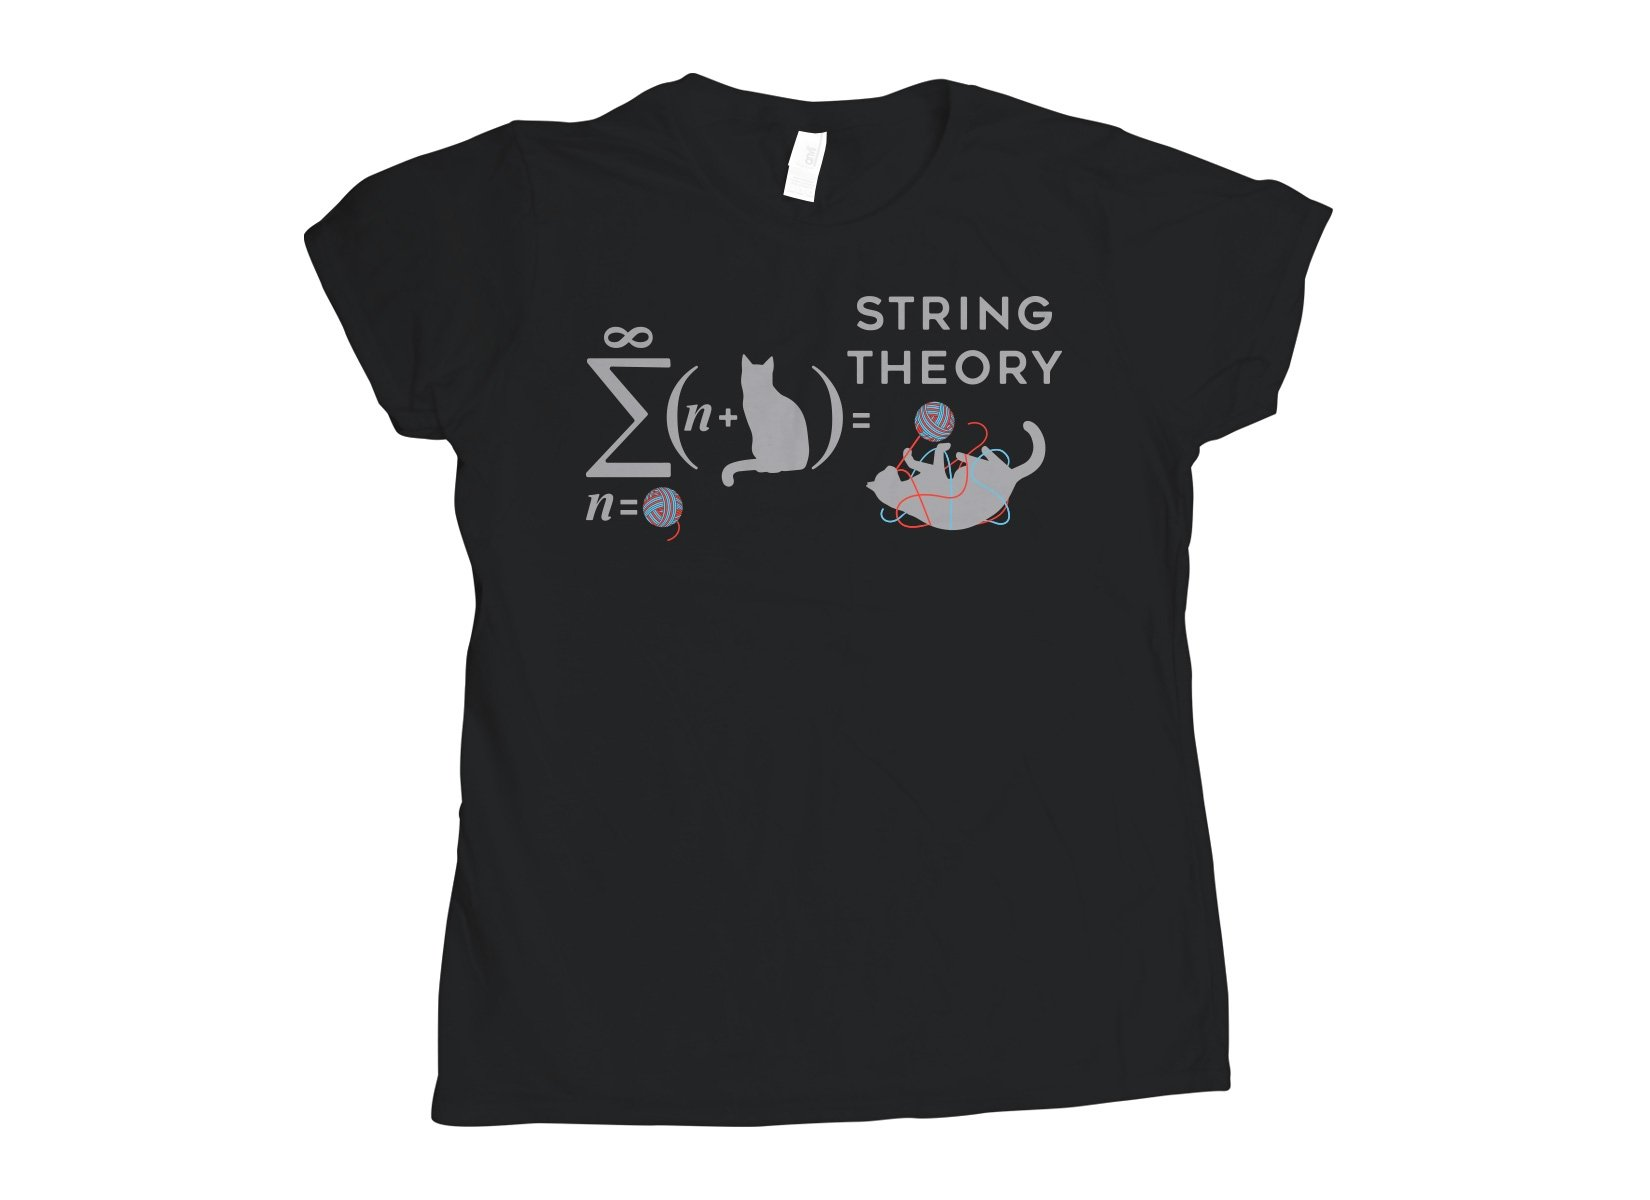 String Theory on Womens T-Shirt